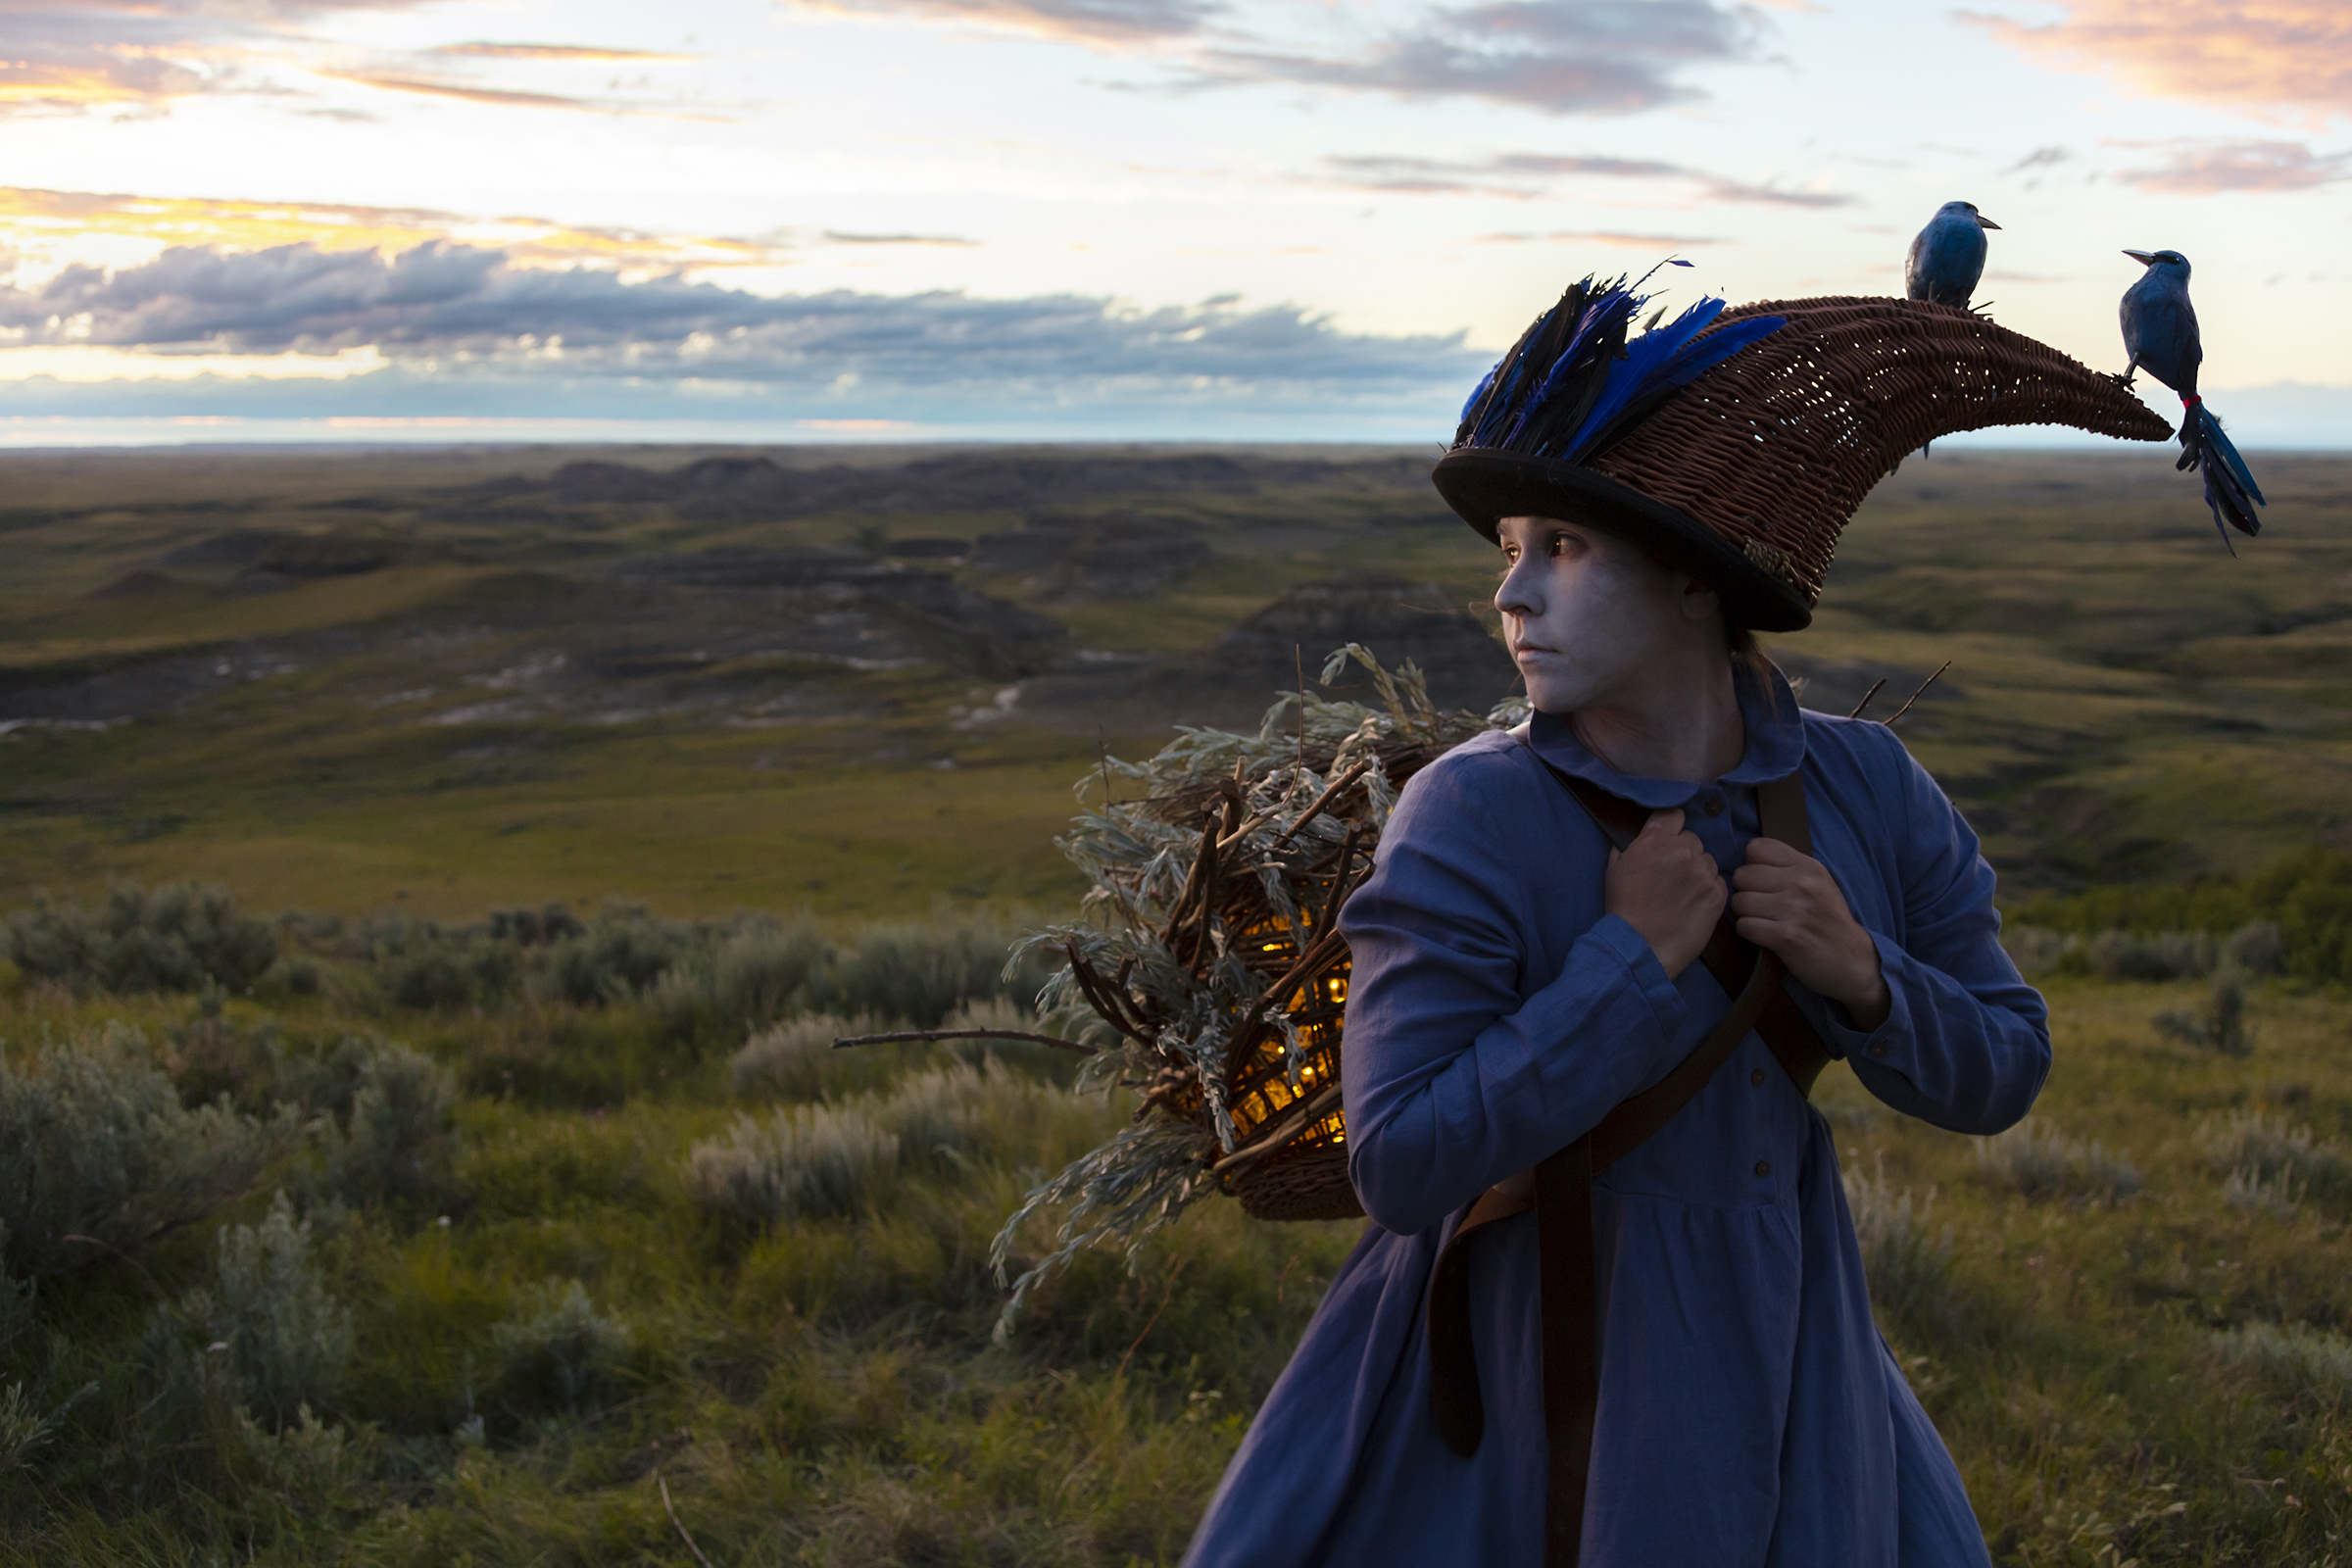 Meryl McMaster, Lead Me to Places I Could Never Find on My Own, 2019. From the series As Immense as the Sky. Courtesy of the artist, Stephen Bulger Gallery and Pierre-François Ouellette art contemporain.